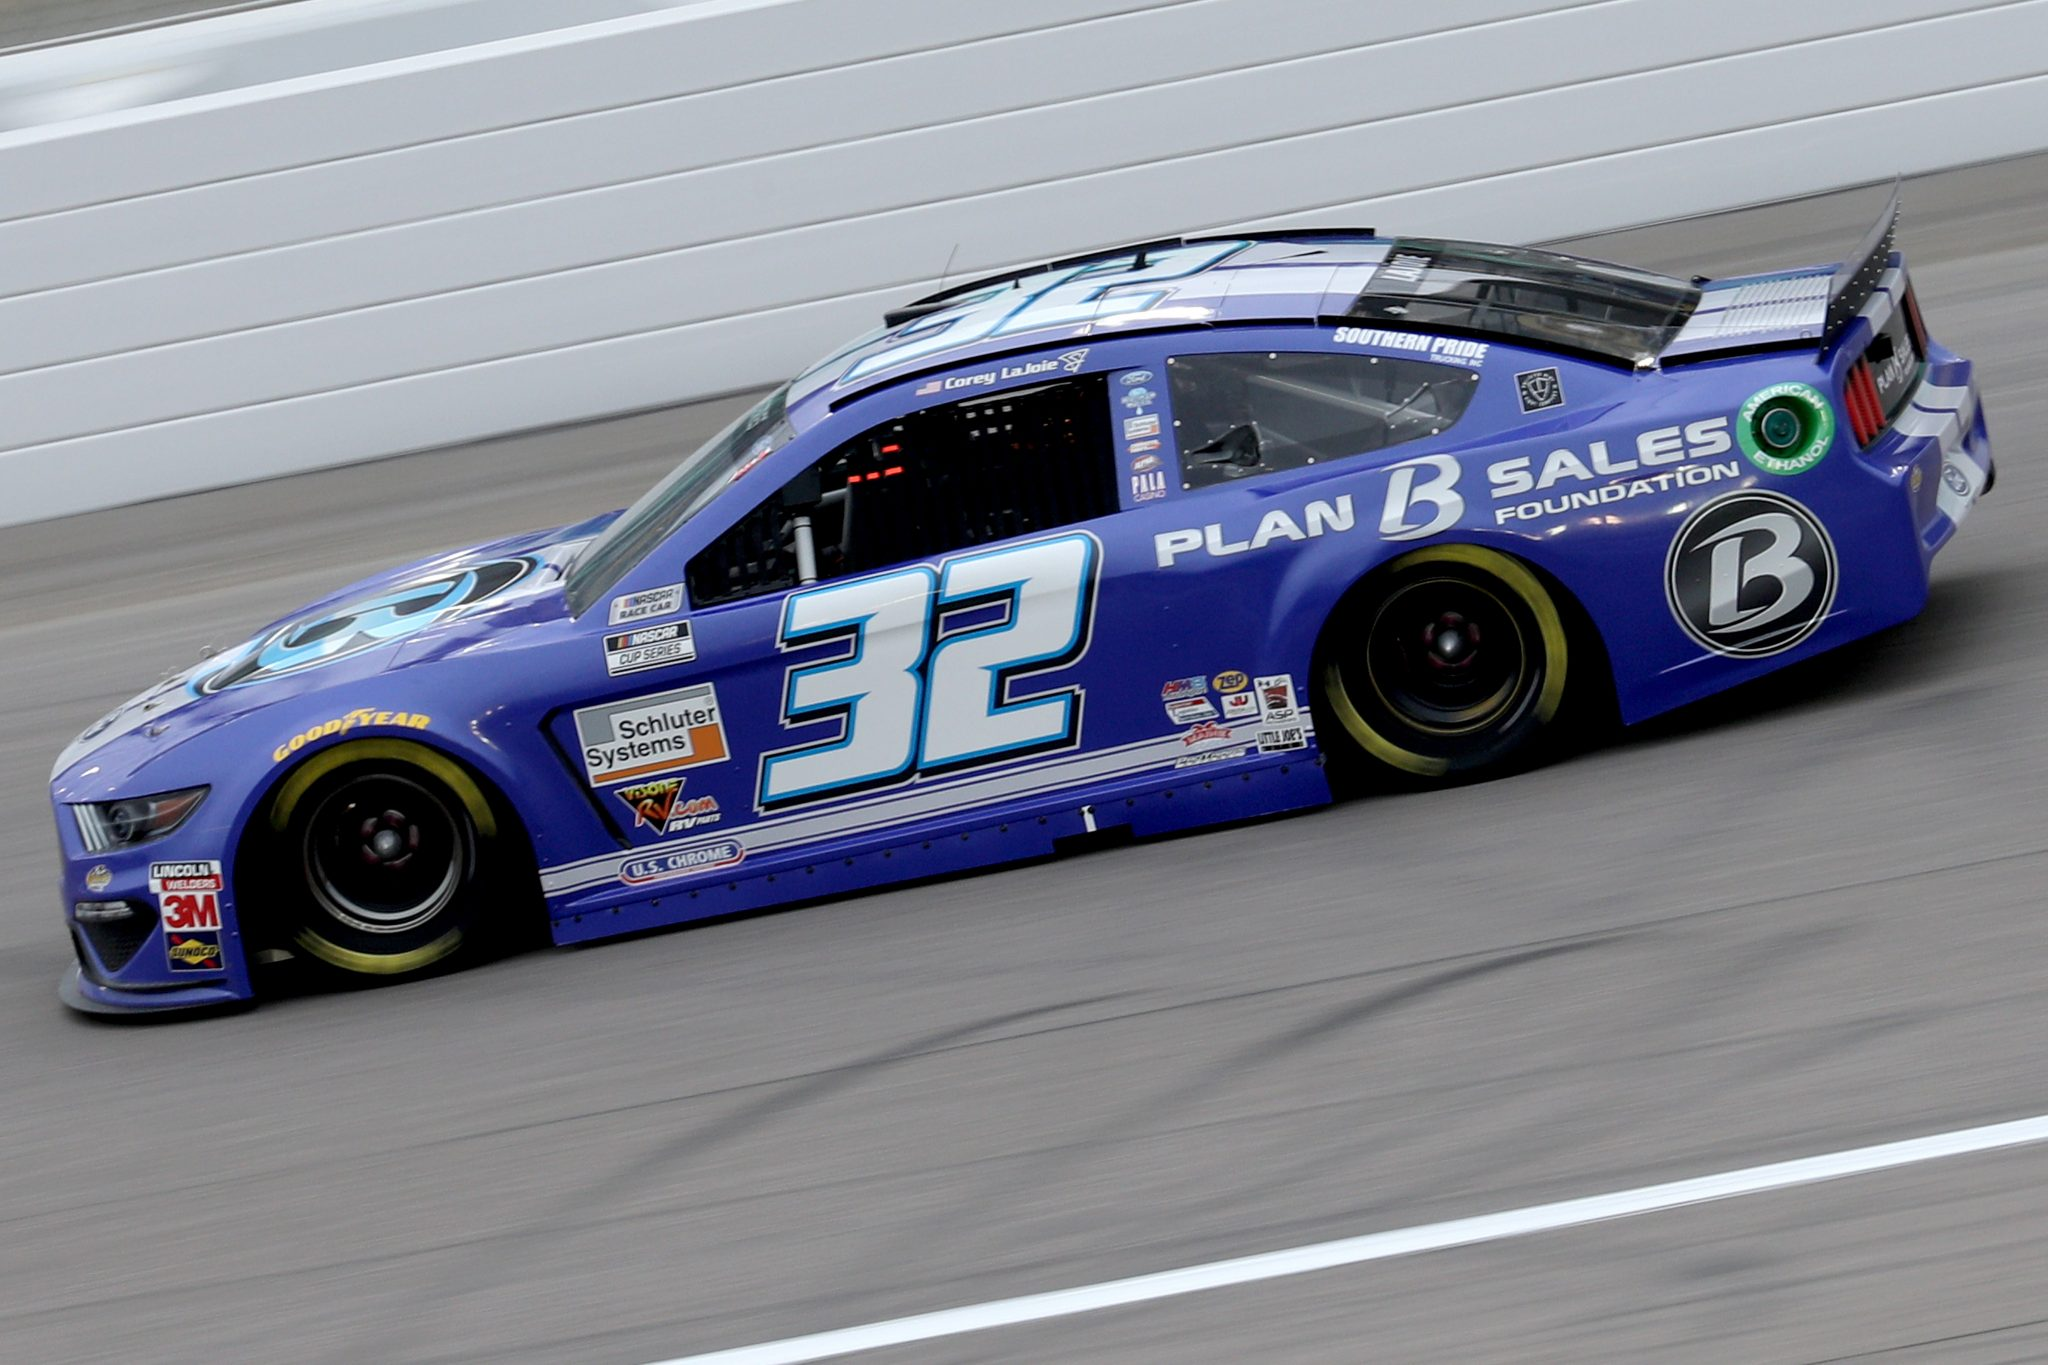 KANSAS CITY, KANSAS - OCTOBER 18: Corey LaJoie, driver of the #32 Plan B Sales Foundation Ford, drives during the NASCAR Cup Series Hollywood Casino 400 at Kansas Speedway on October 18, 2020 in Kansas City, Kansas. (Photo by Chris Graythen/Getty Images) | Getty Images